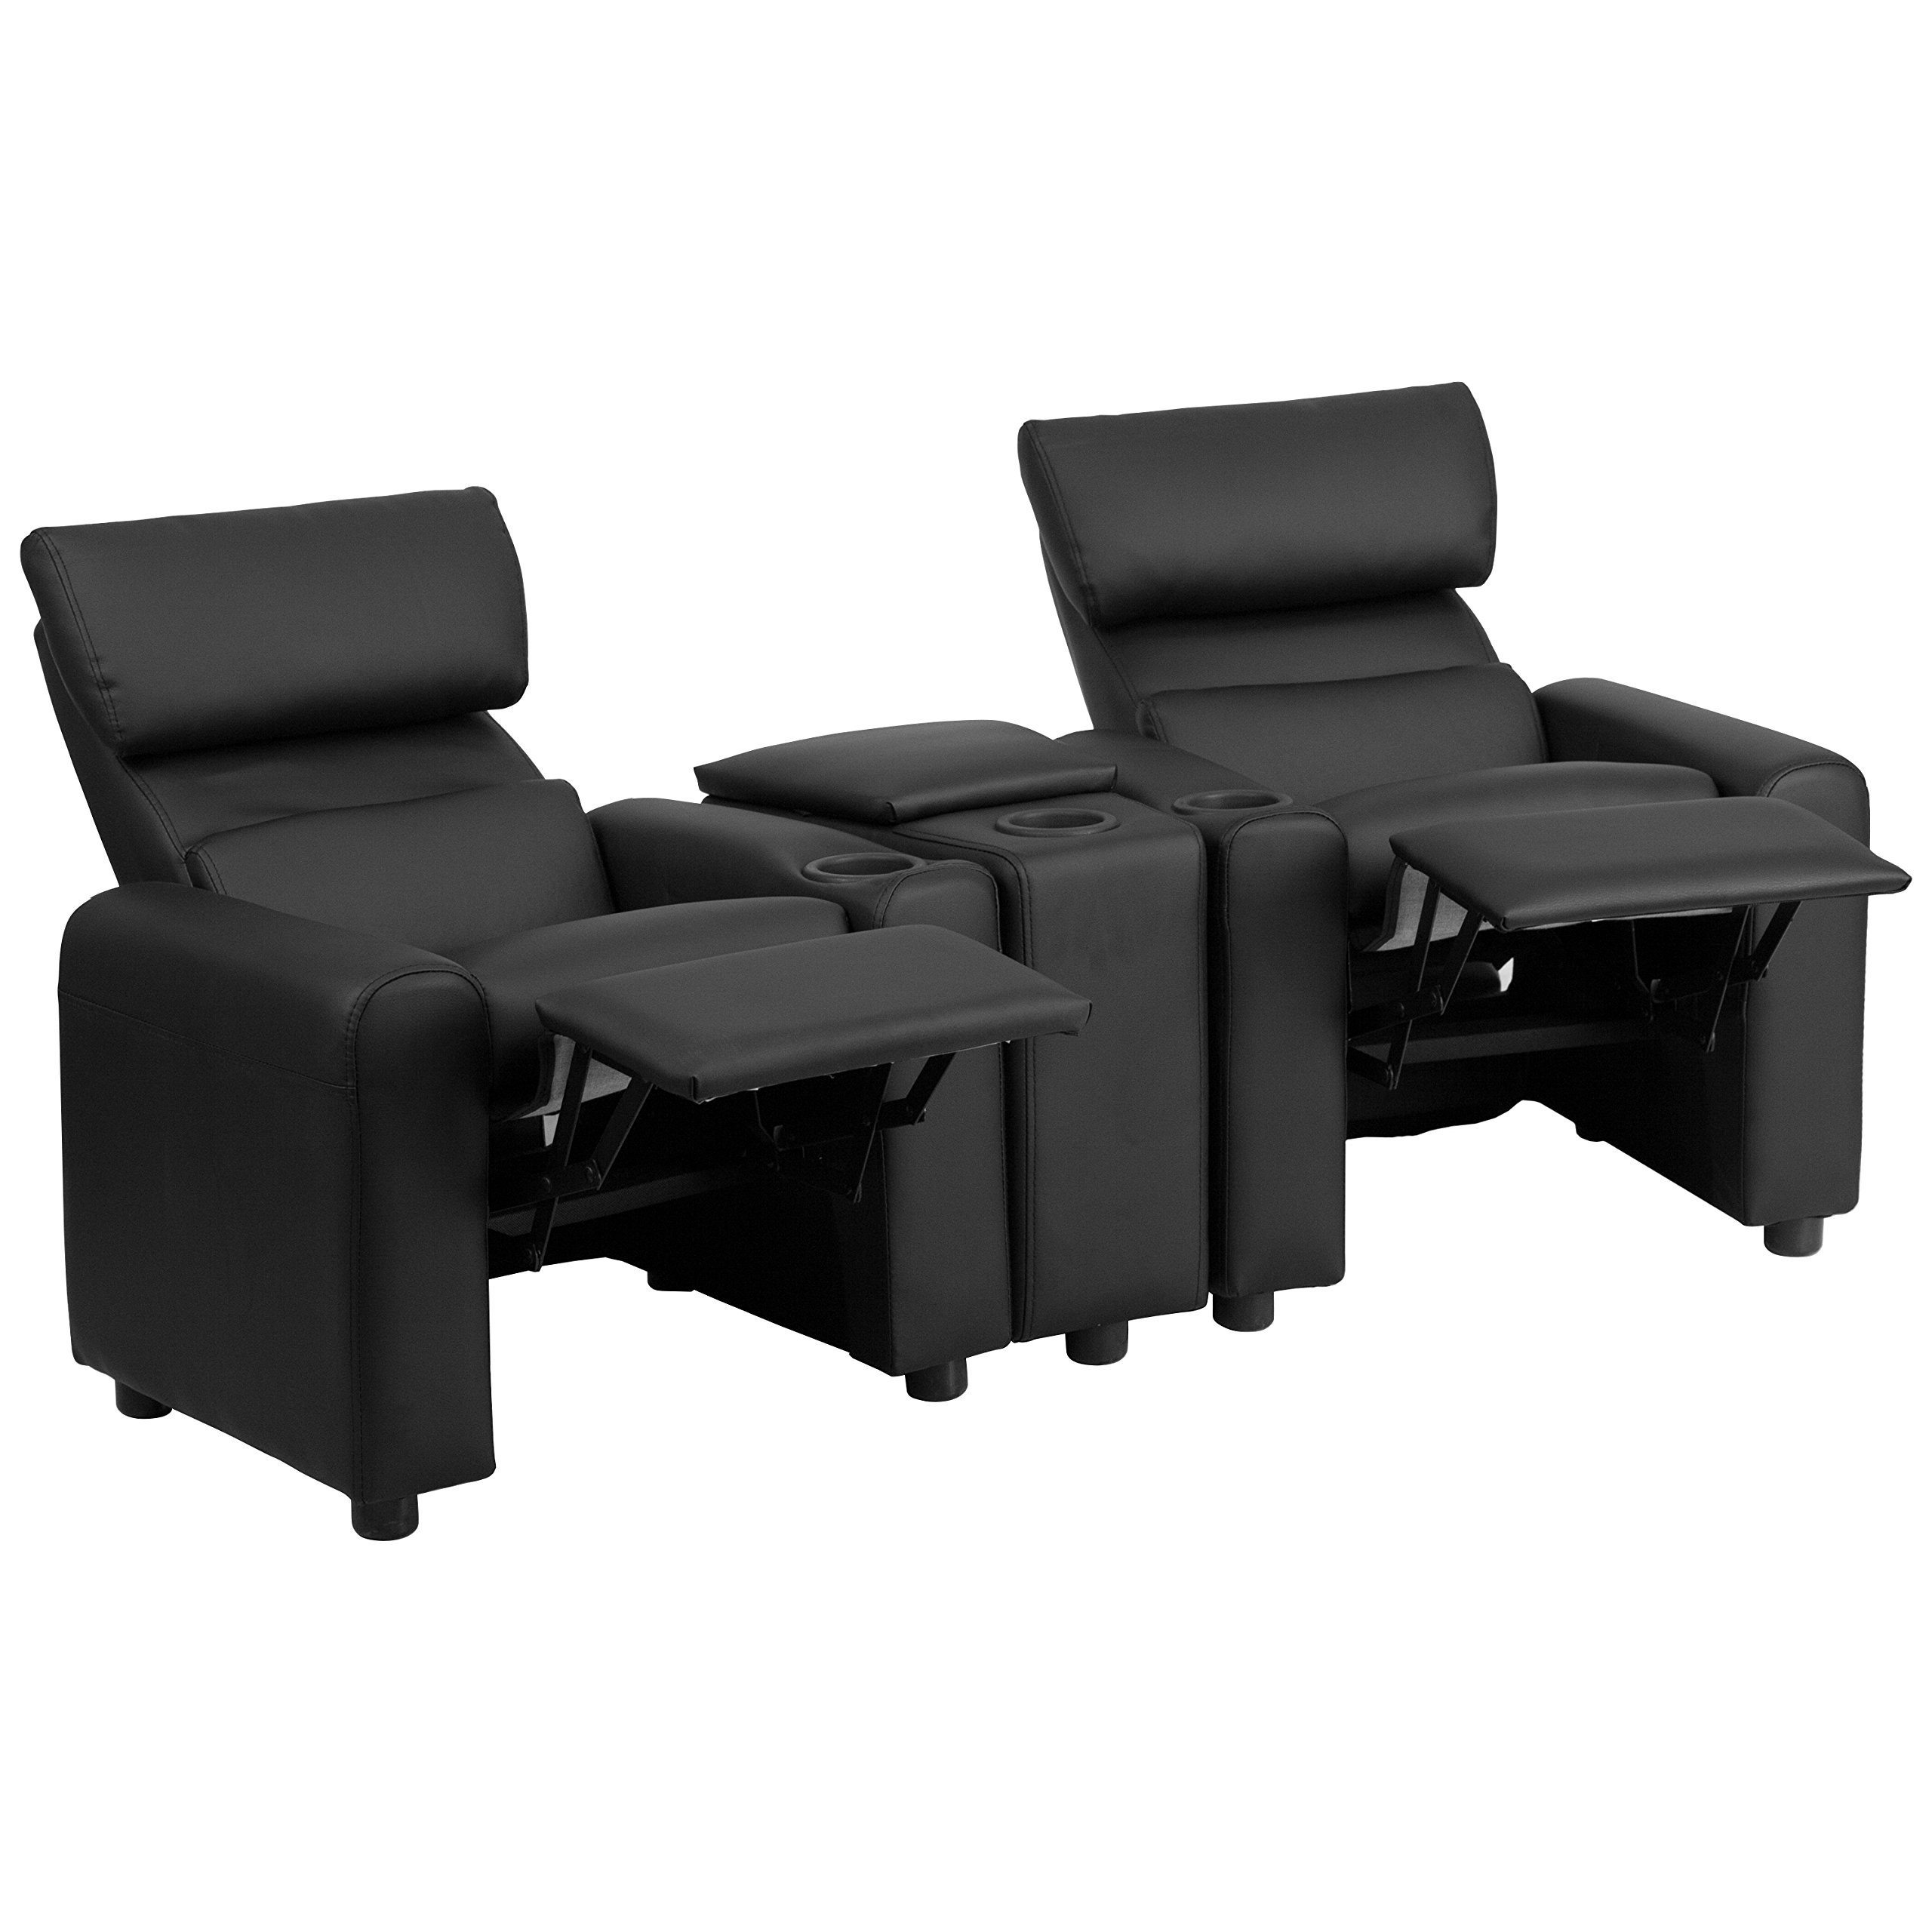 Flash Furniture Kid's Black Leather Reclining Theater Seating with Storage Console